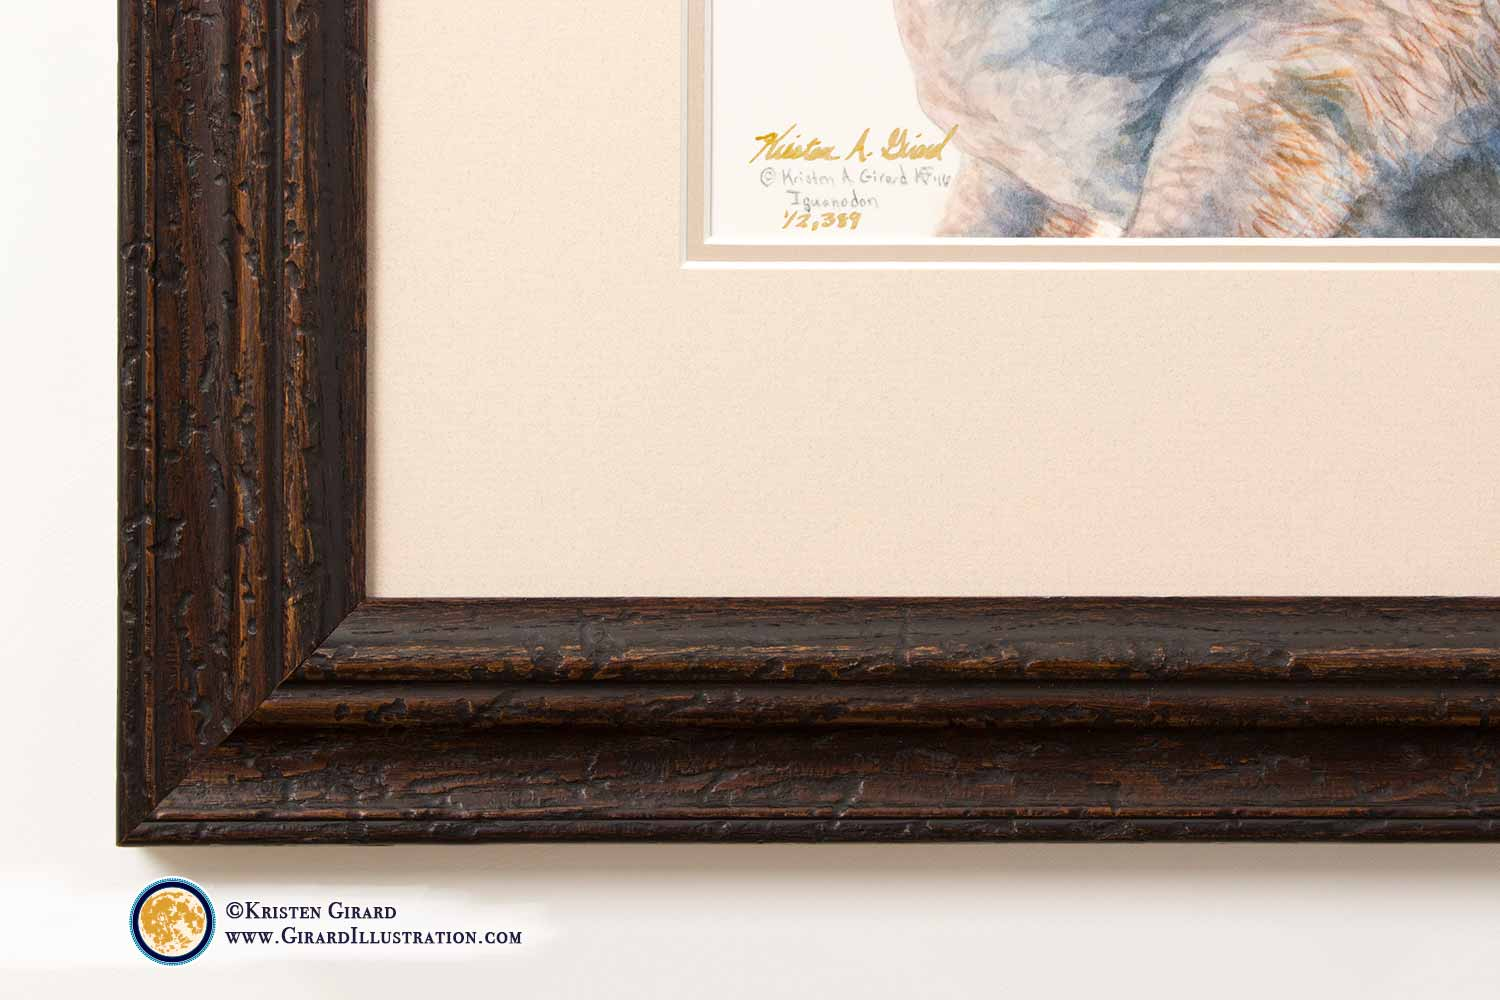 Ever get tired of seeing nothing but glare when trying to look at an artwork framed with glass? Yah? Me, too.     That's why we only use Museum Glass when framing original art or prints on fine art paper. There is so little glare you won't believe the glass is there!